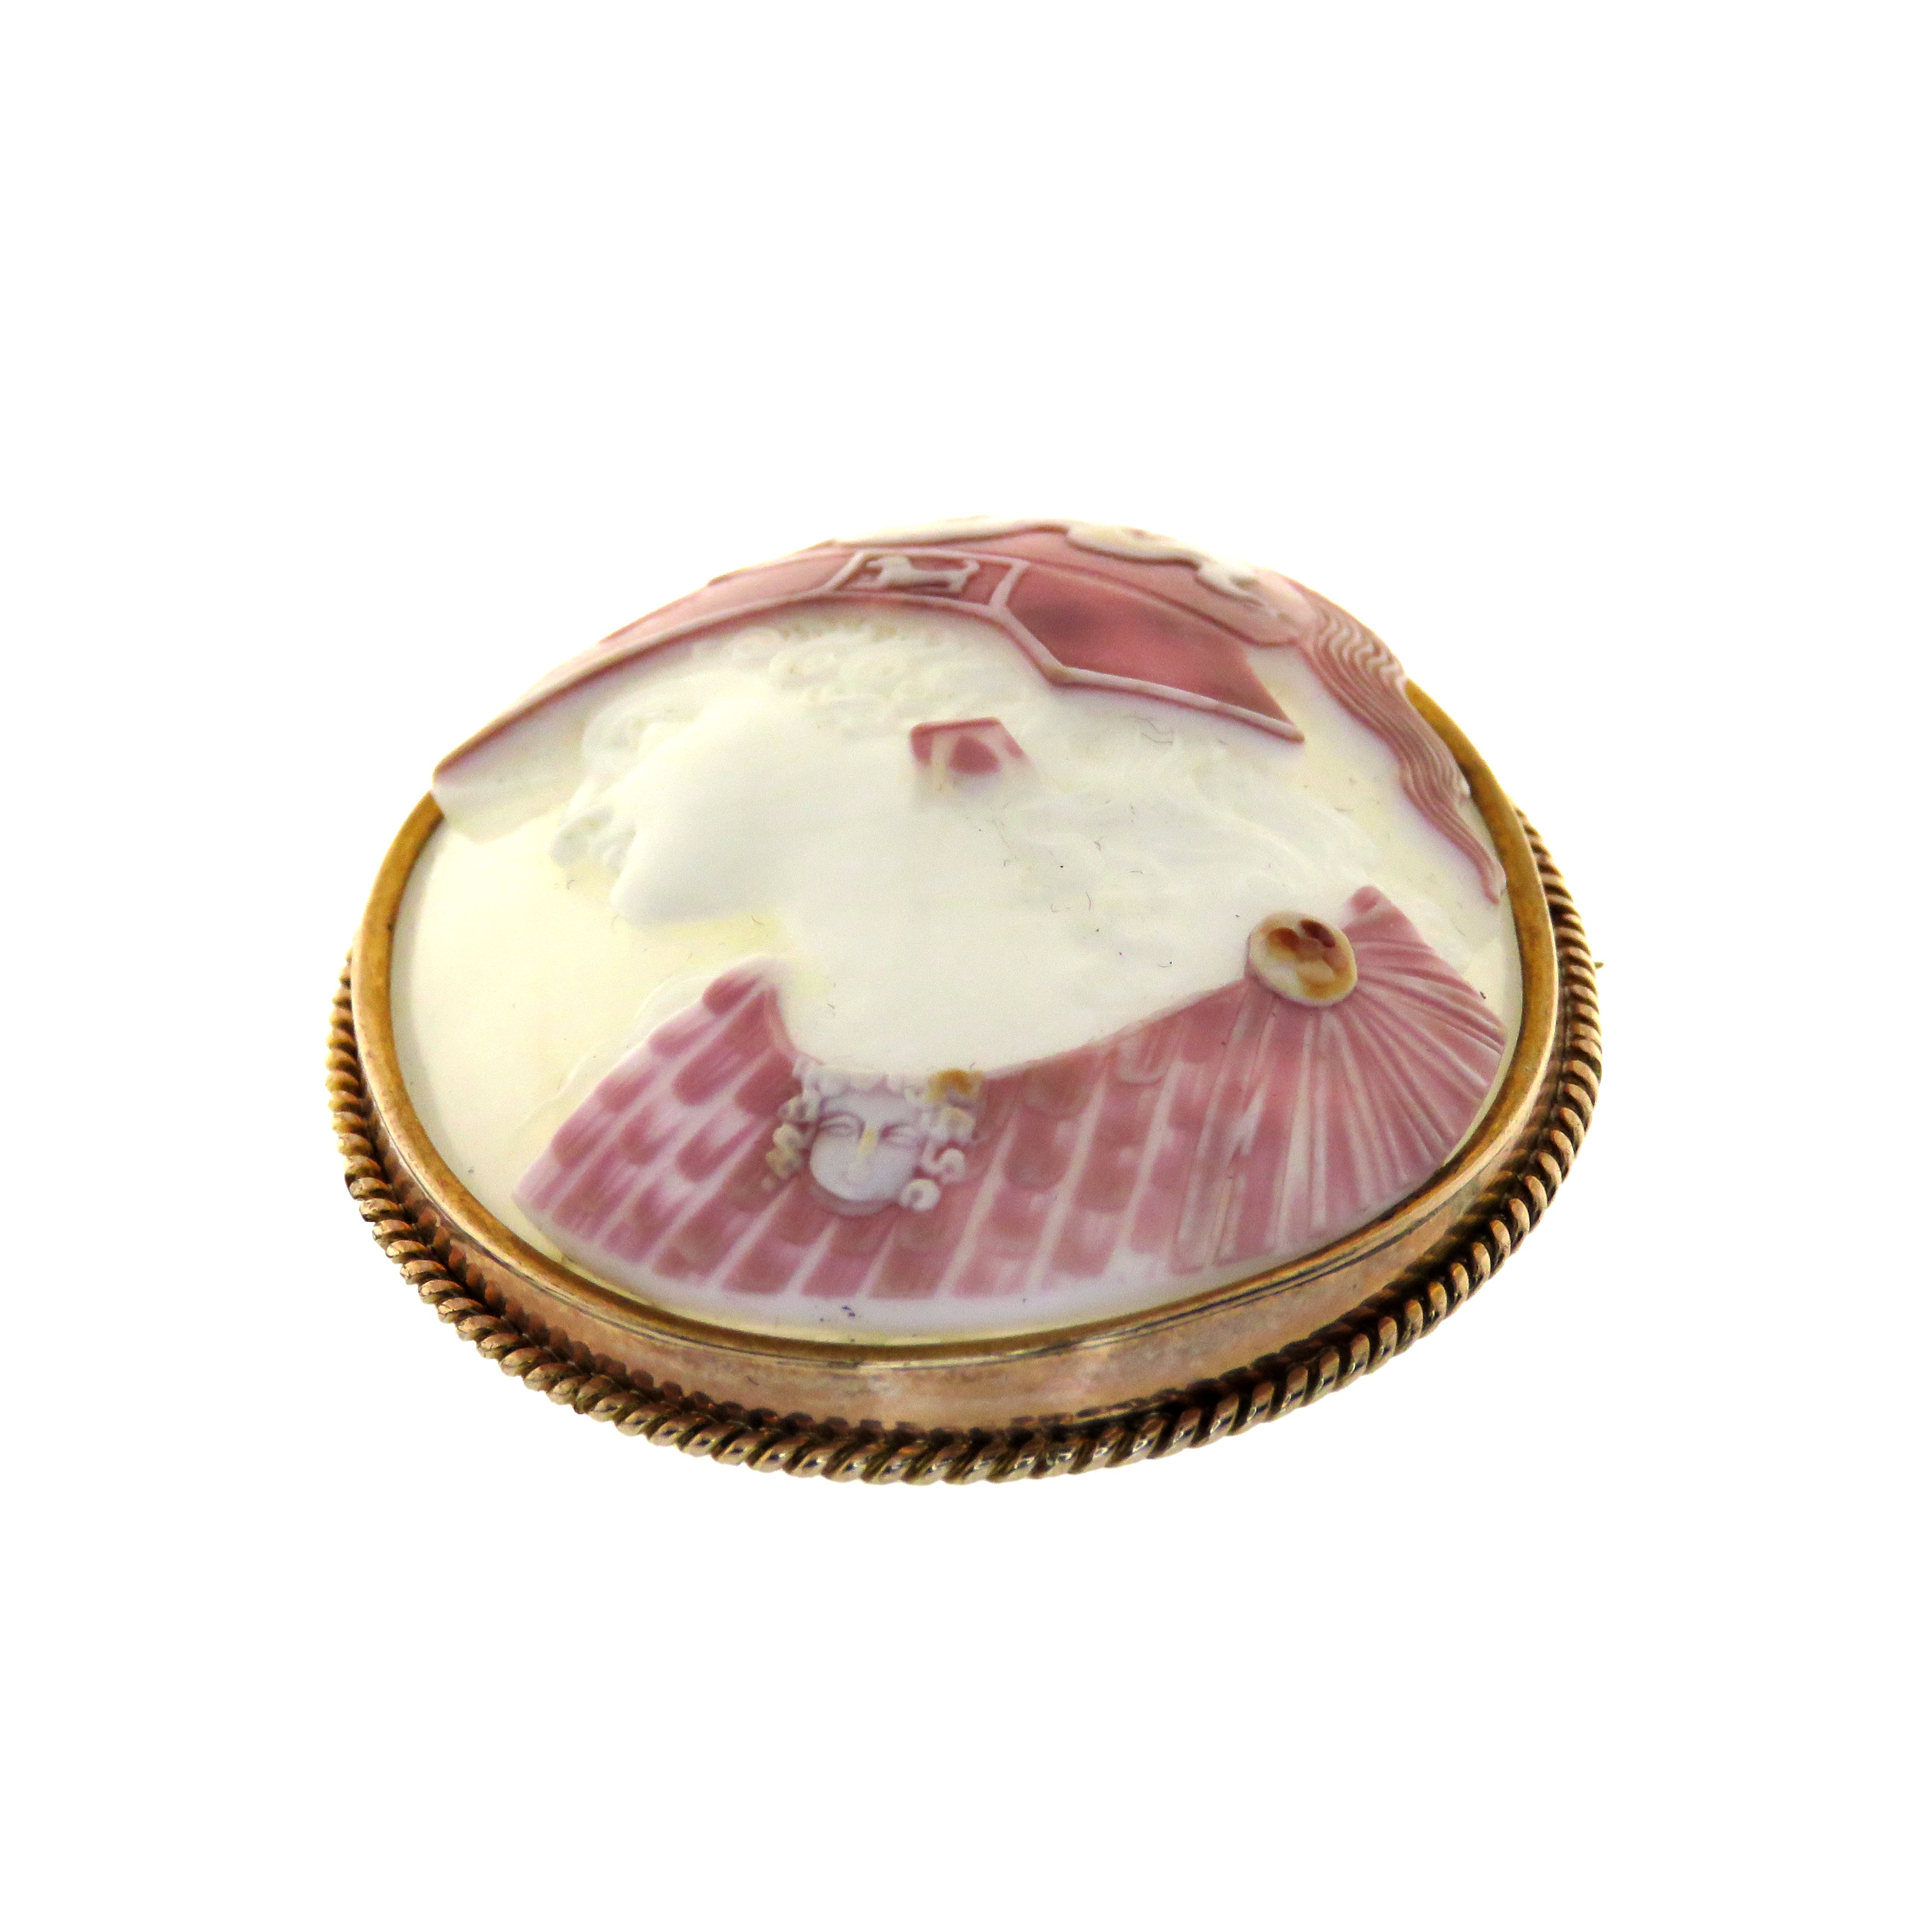 14ct Pink Cowrie Shell Athena Cameo Brooch/Pendant c. 1870